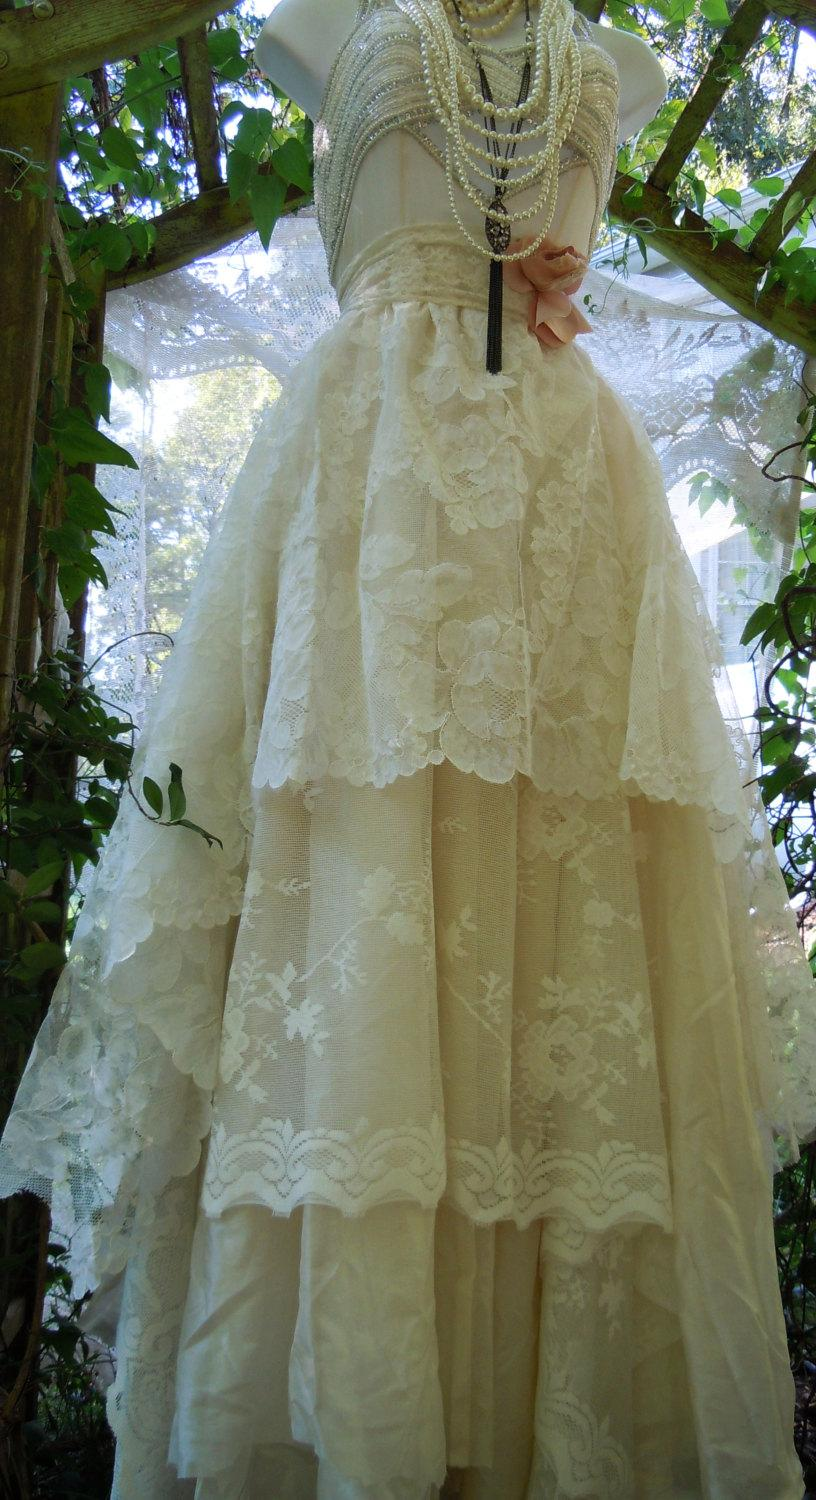 Wedding - Ivory wedding dress beaded  tiered antique  lace tulle fairytale crinoline  vintage  bride  romantic small by vintage opulence on Etsy